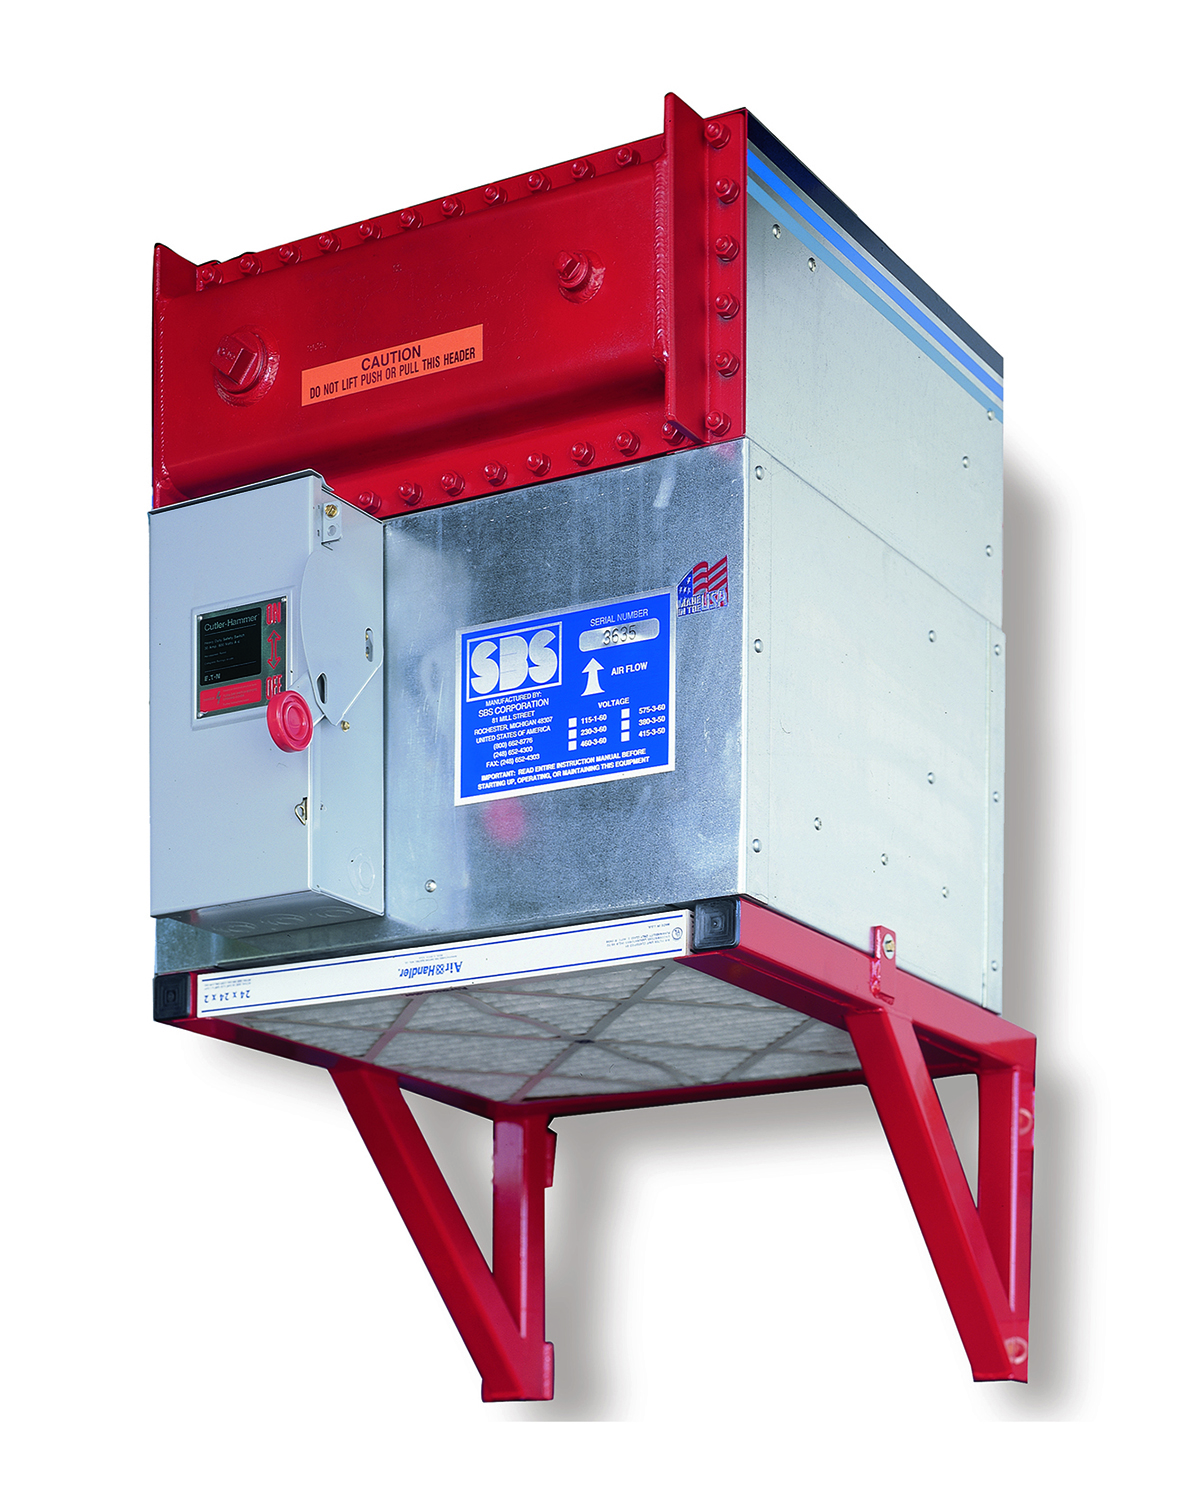 SBS End-O-Therm Generator Cooler